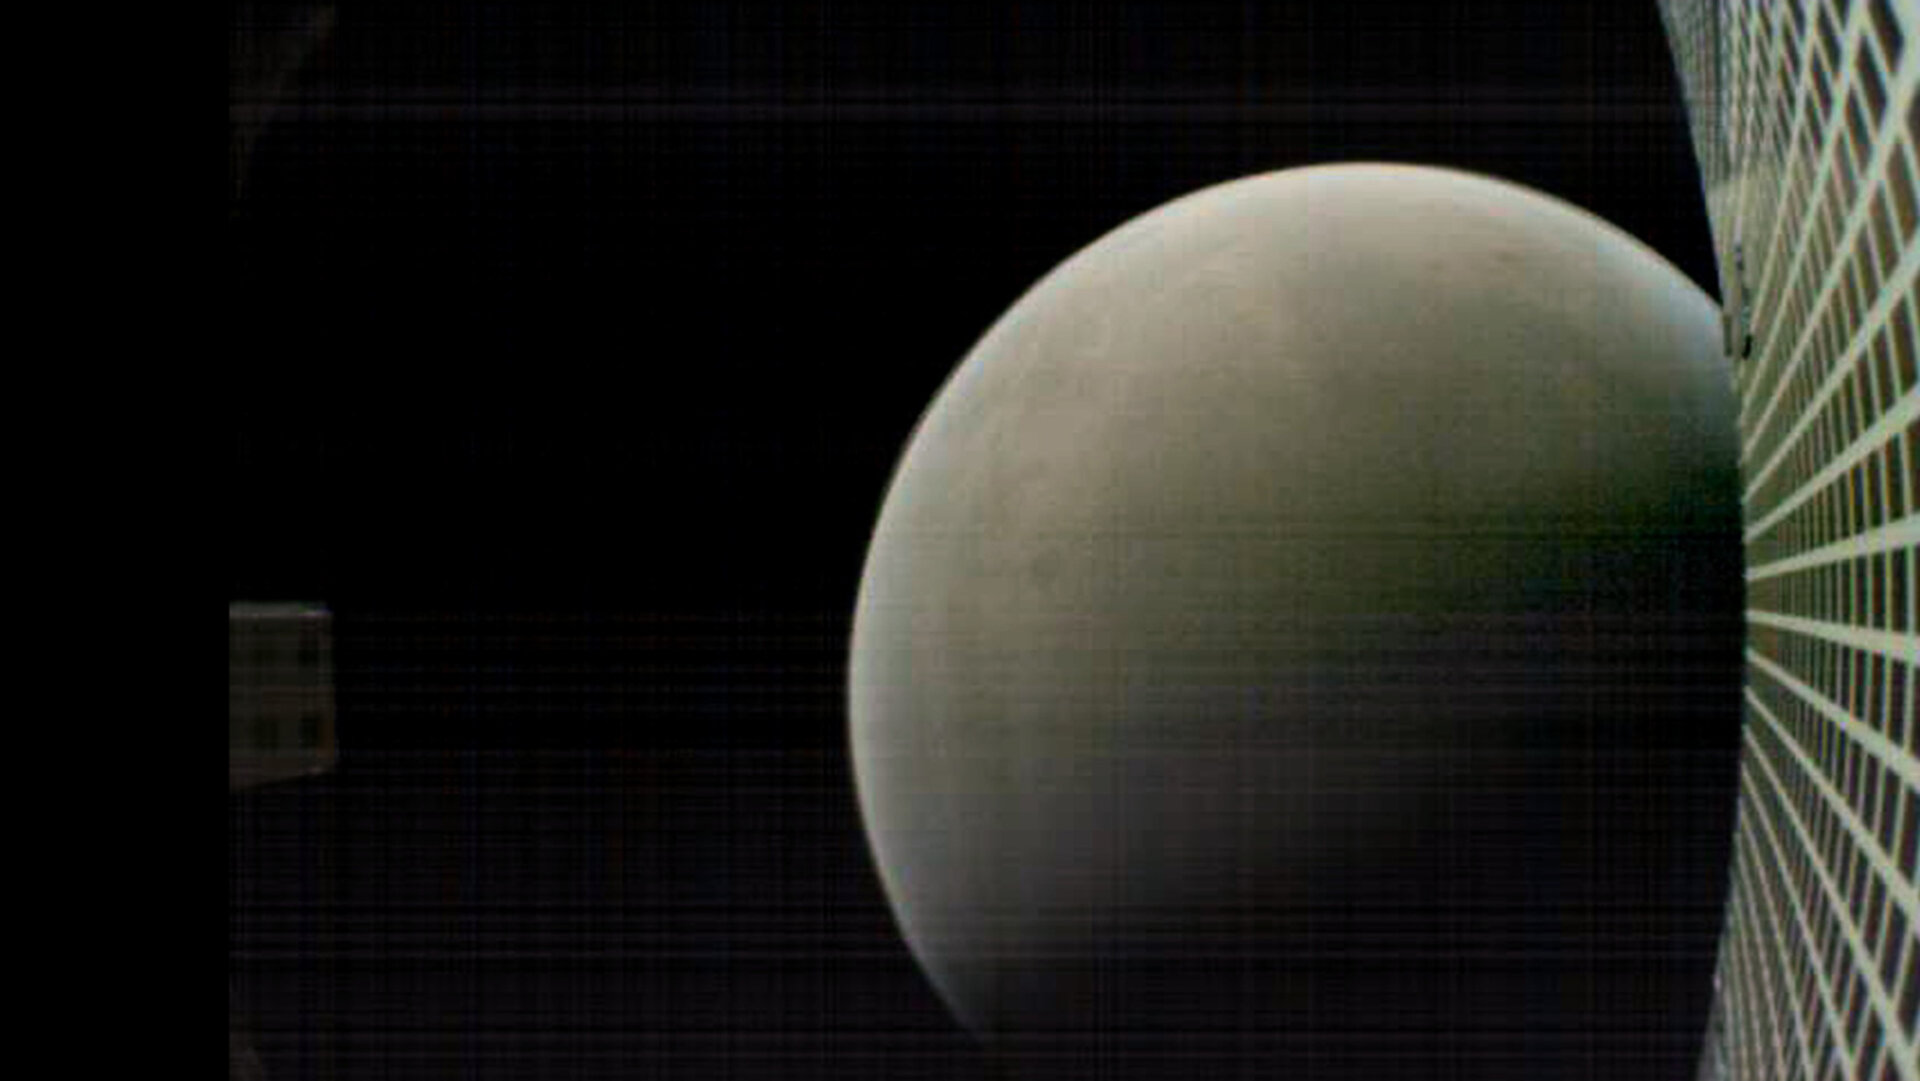 CubeSat shot of Mars